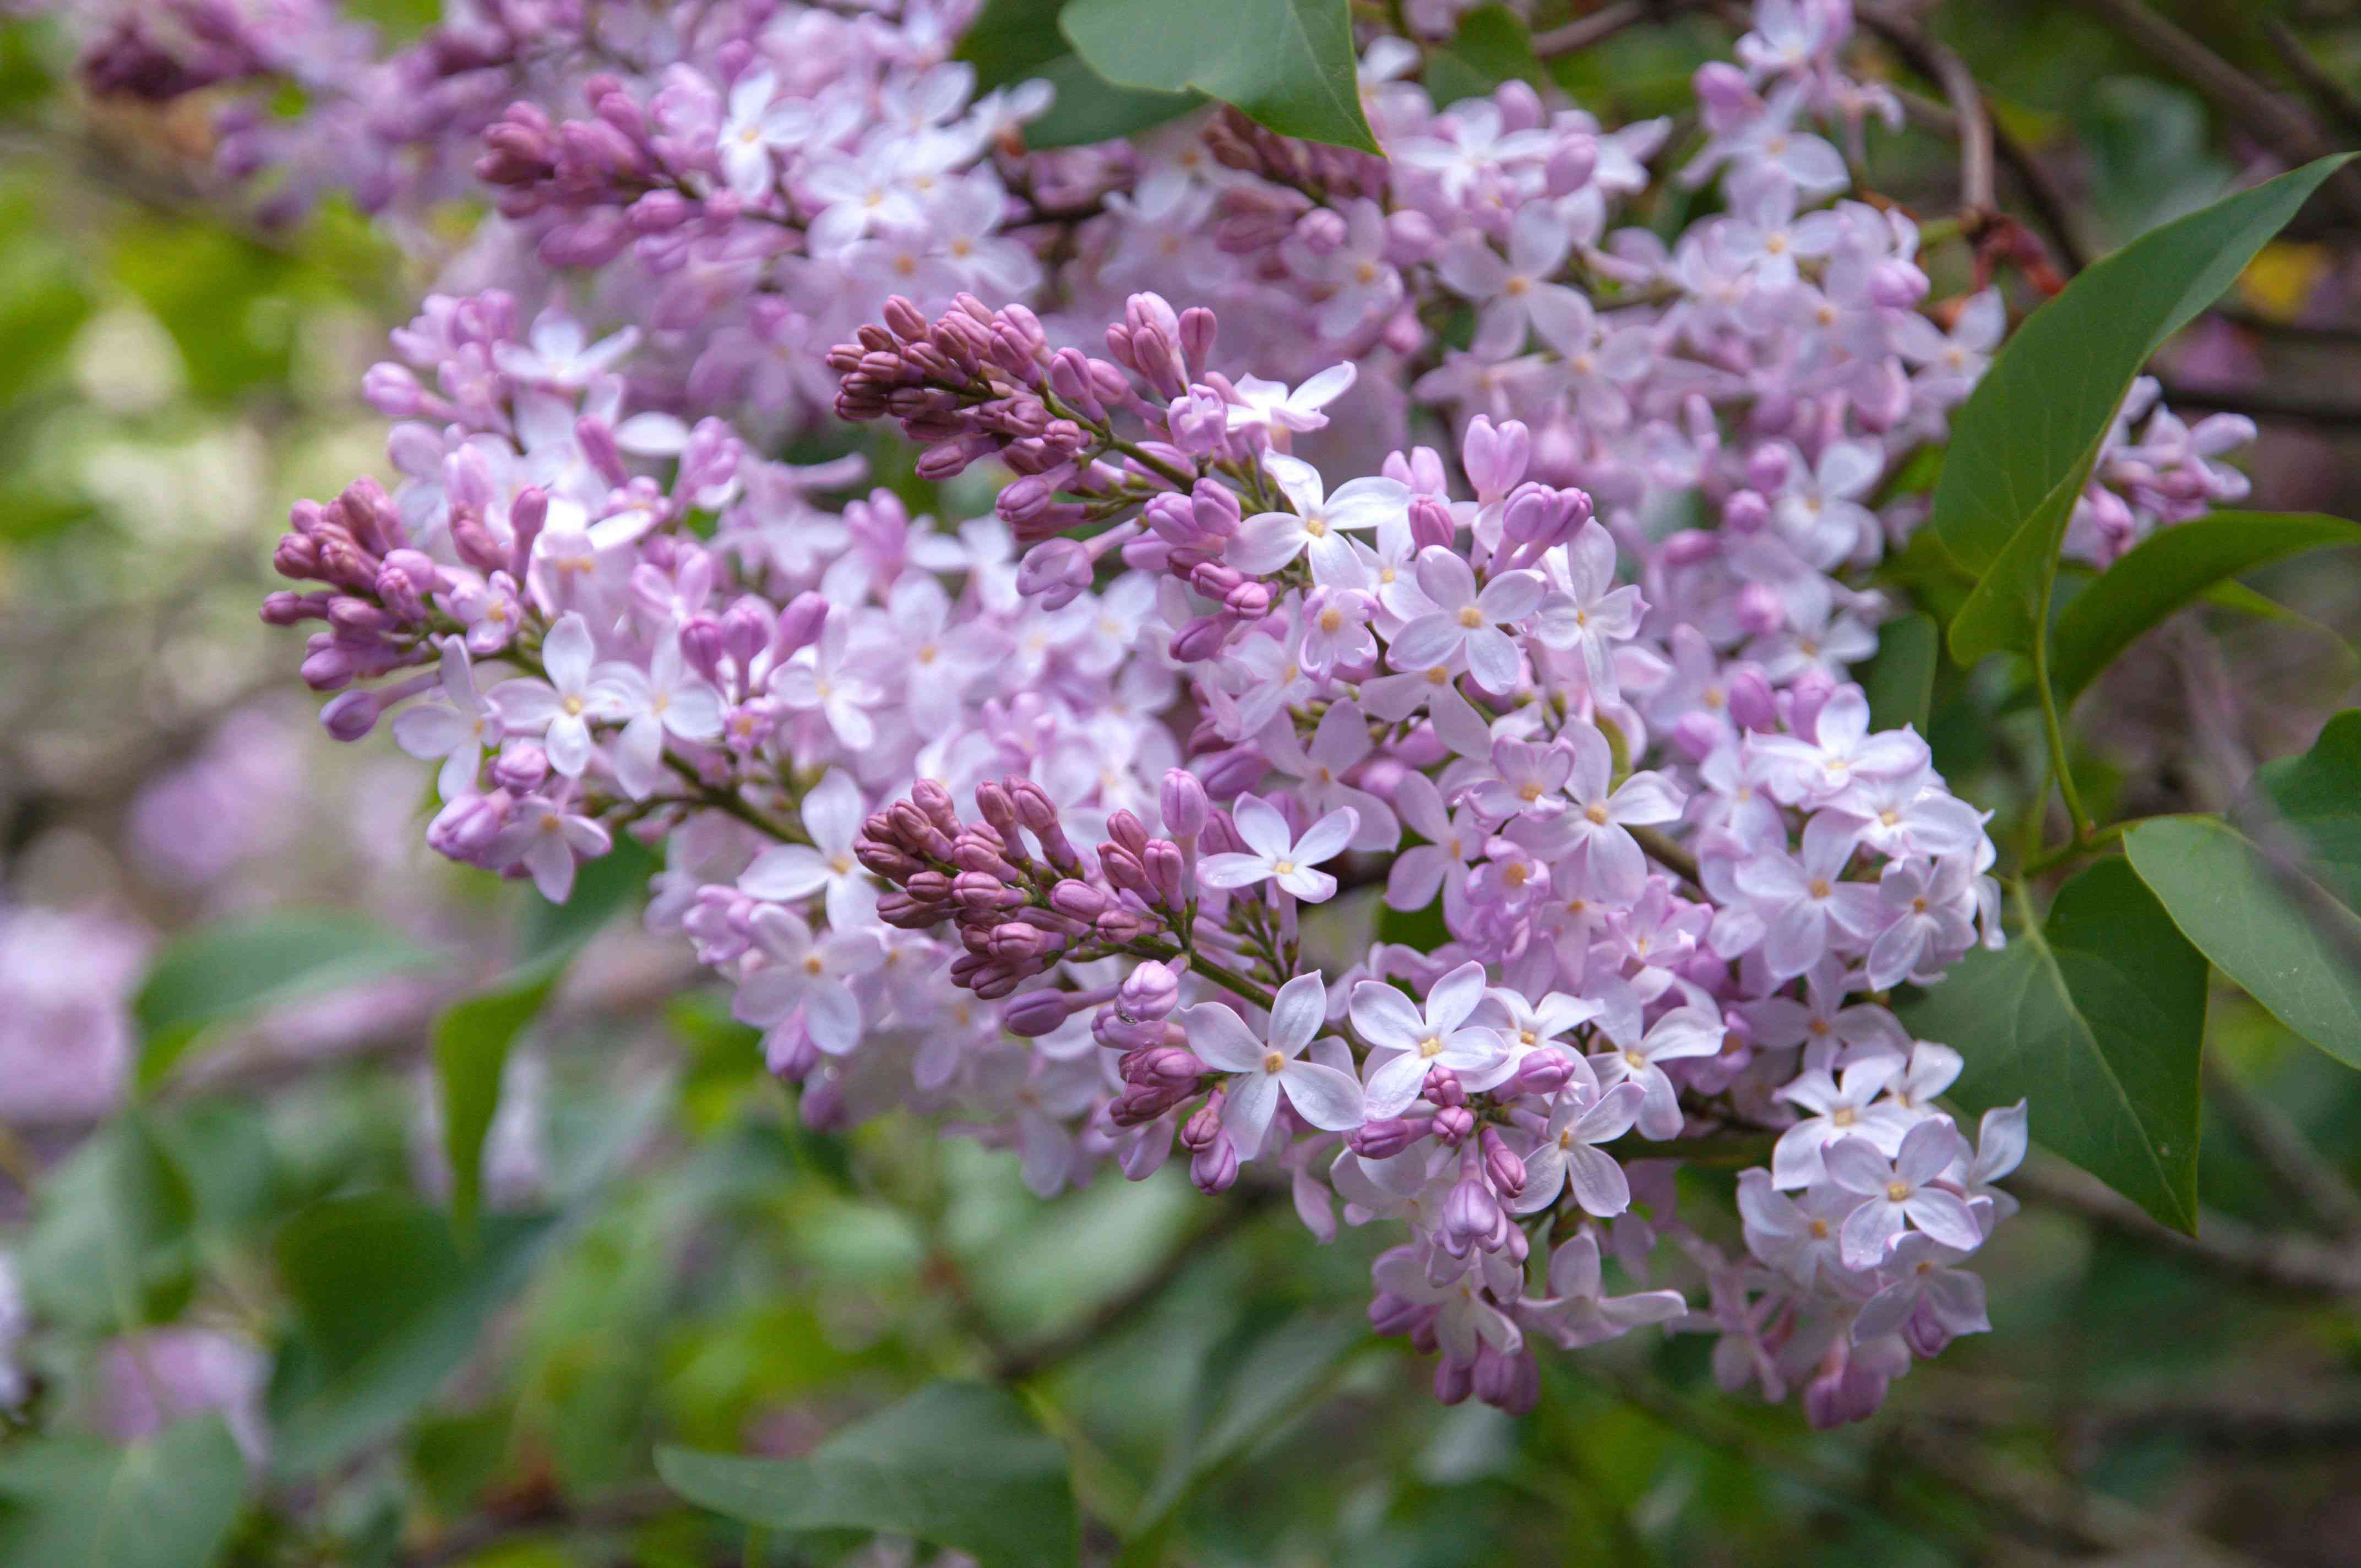 Lilac plant with tiny clusters of small light purple flowers on branches